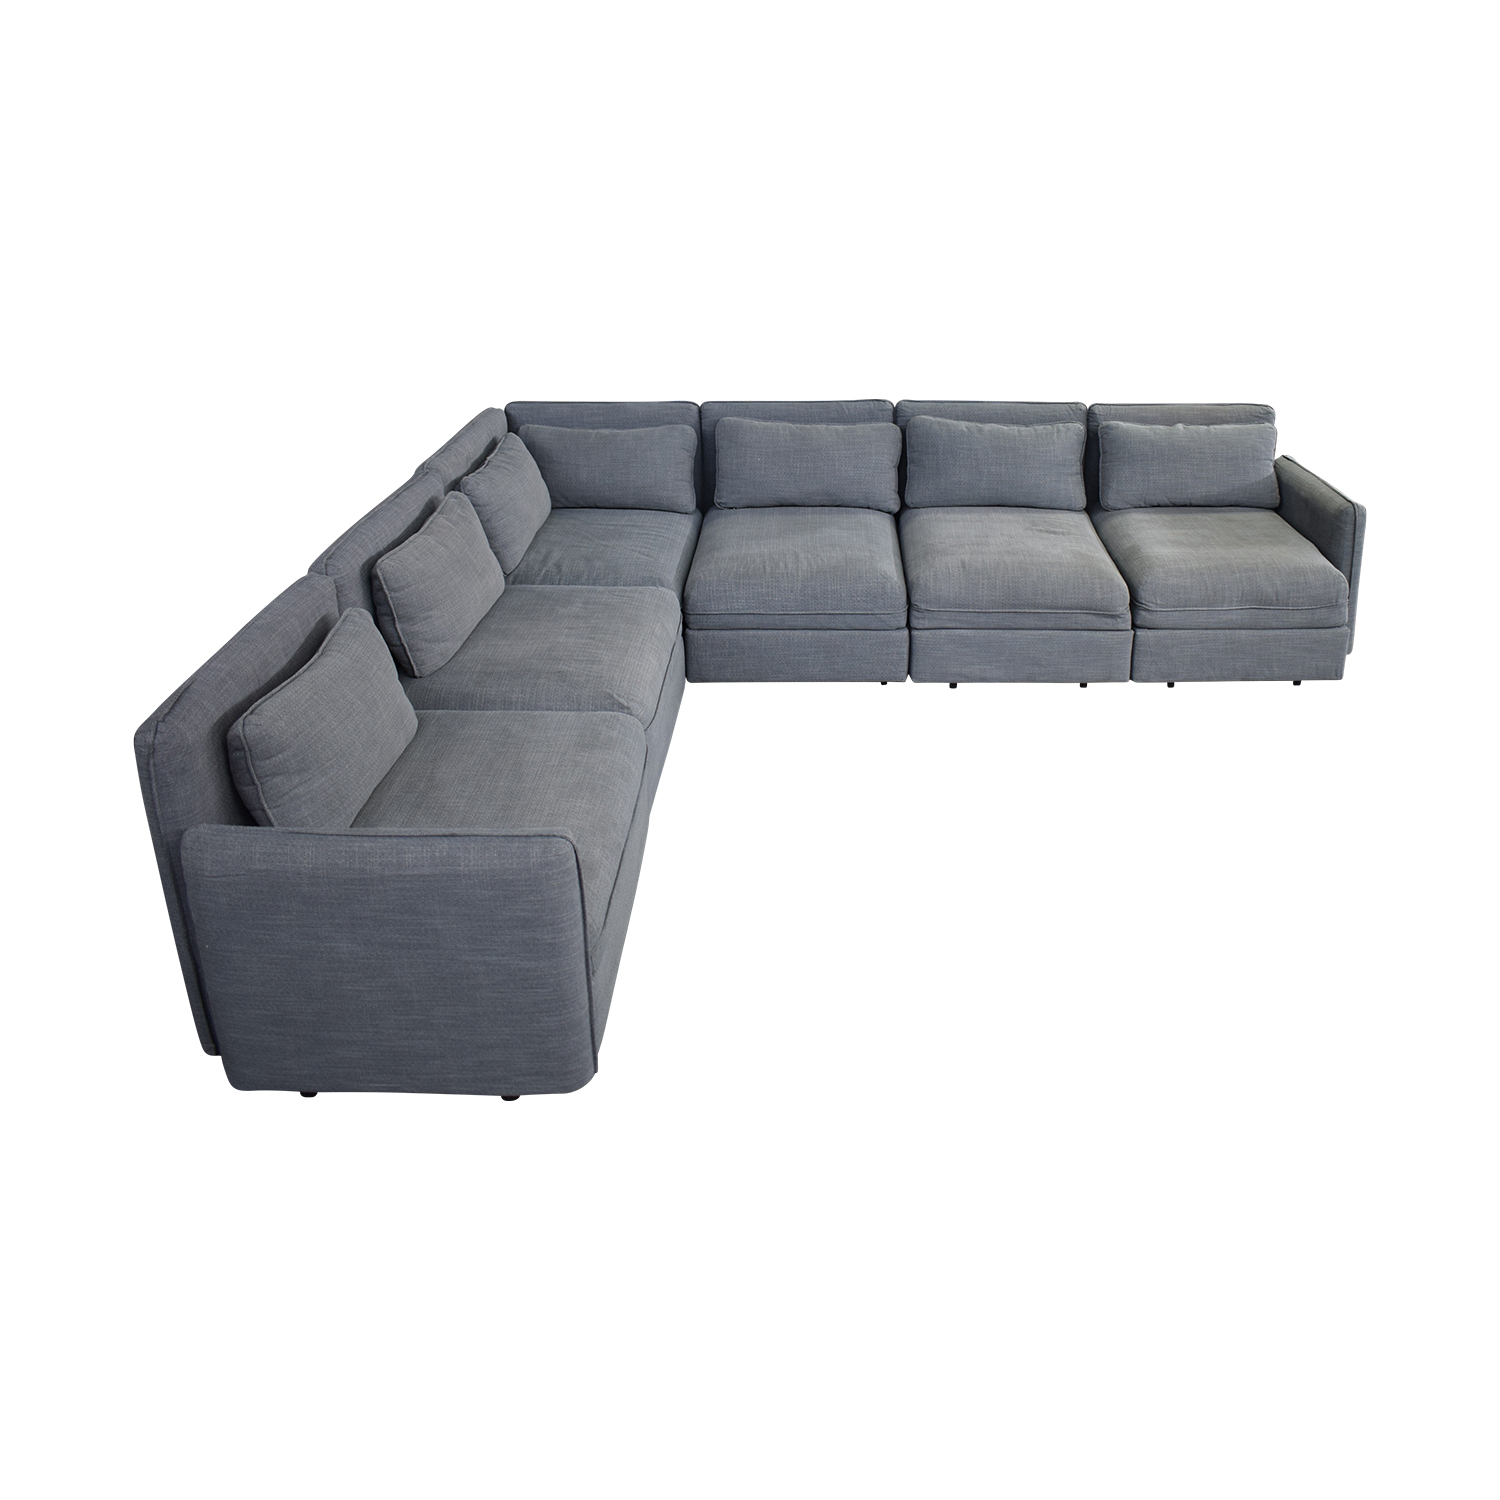 IKEA Ikea Six Piece Sectional Sleeper Sofa dimensions